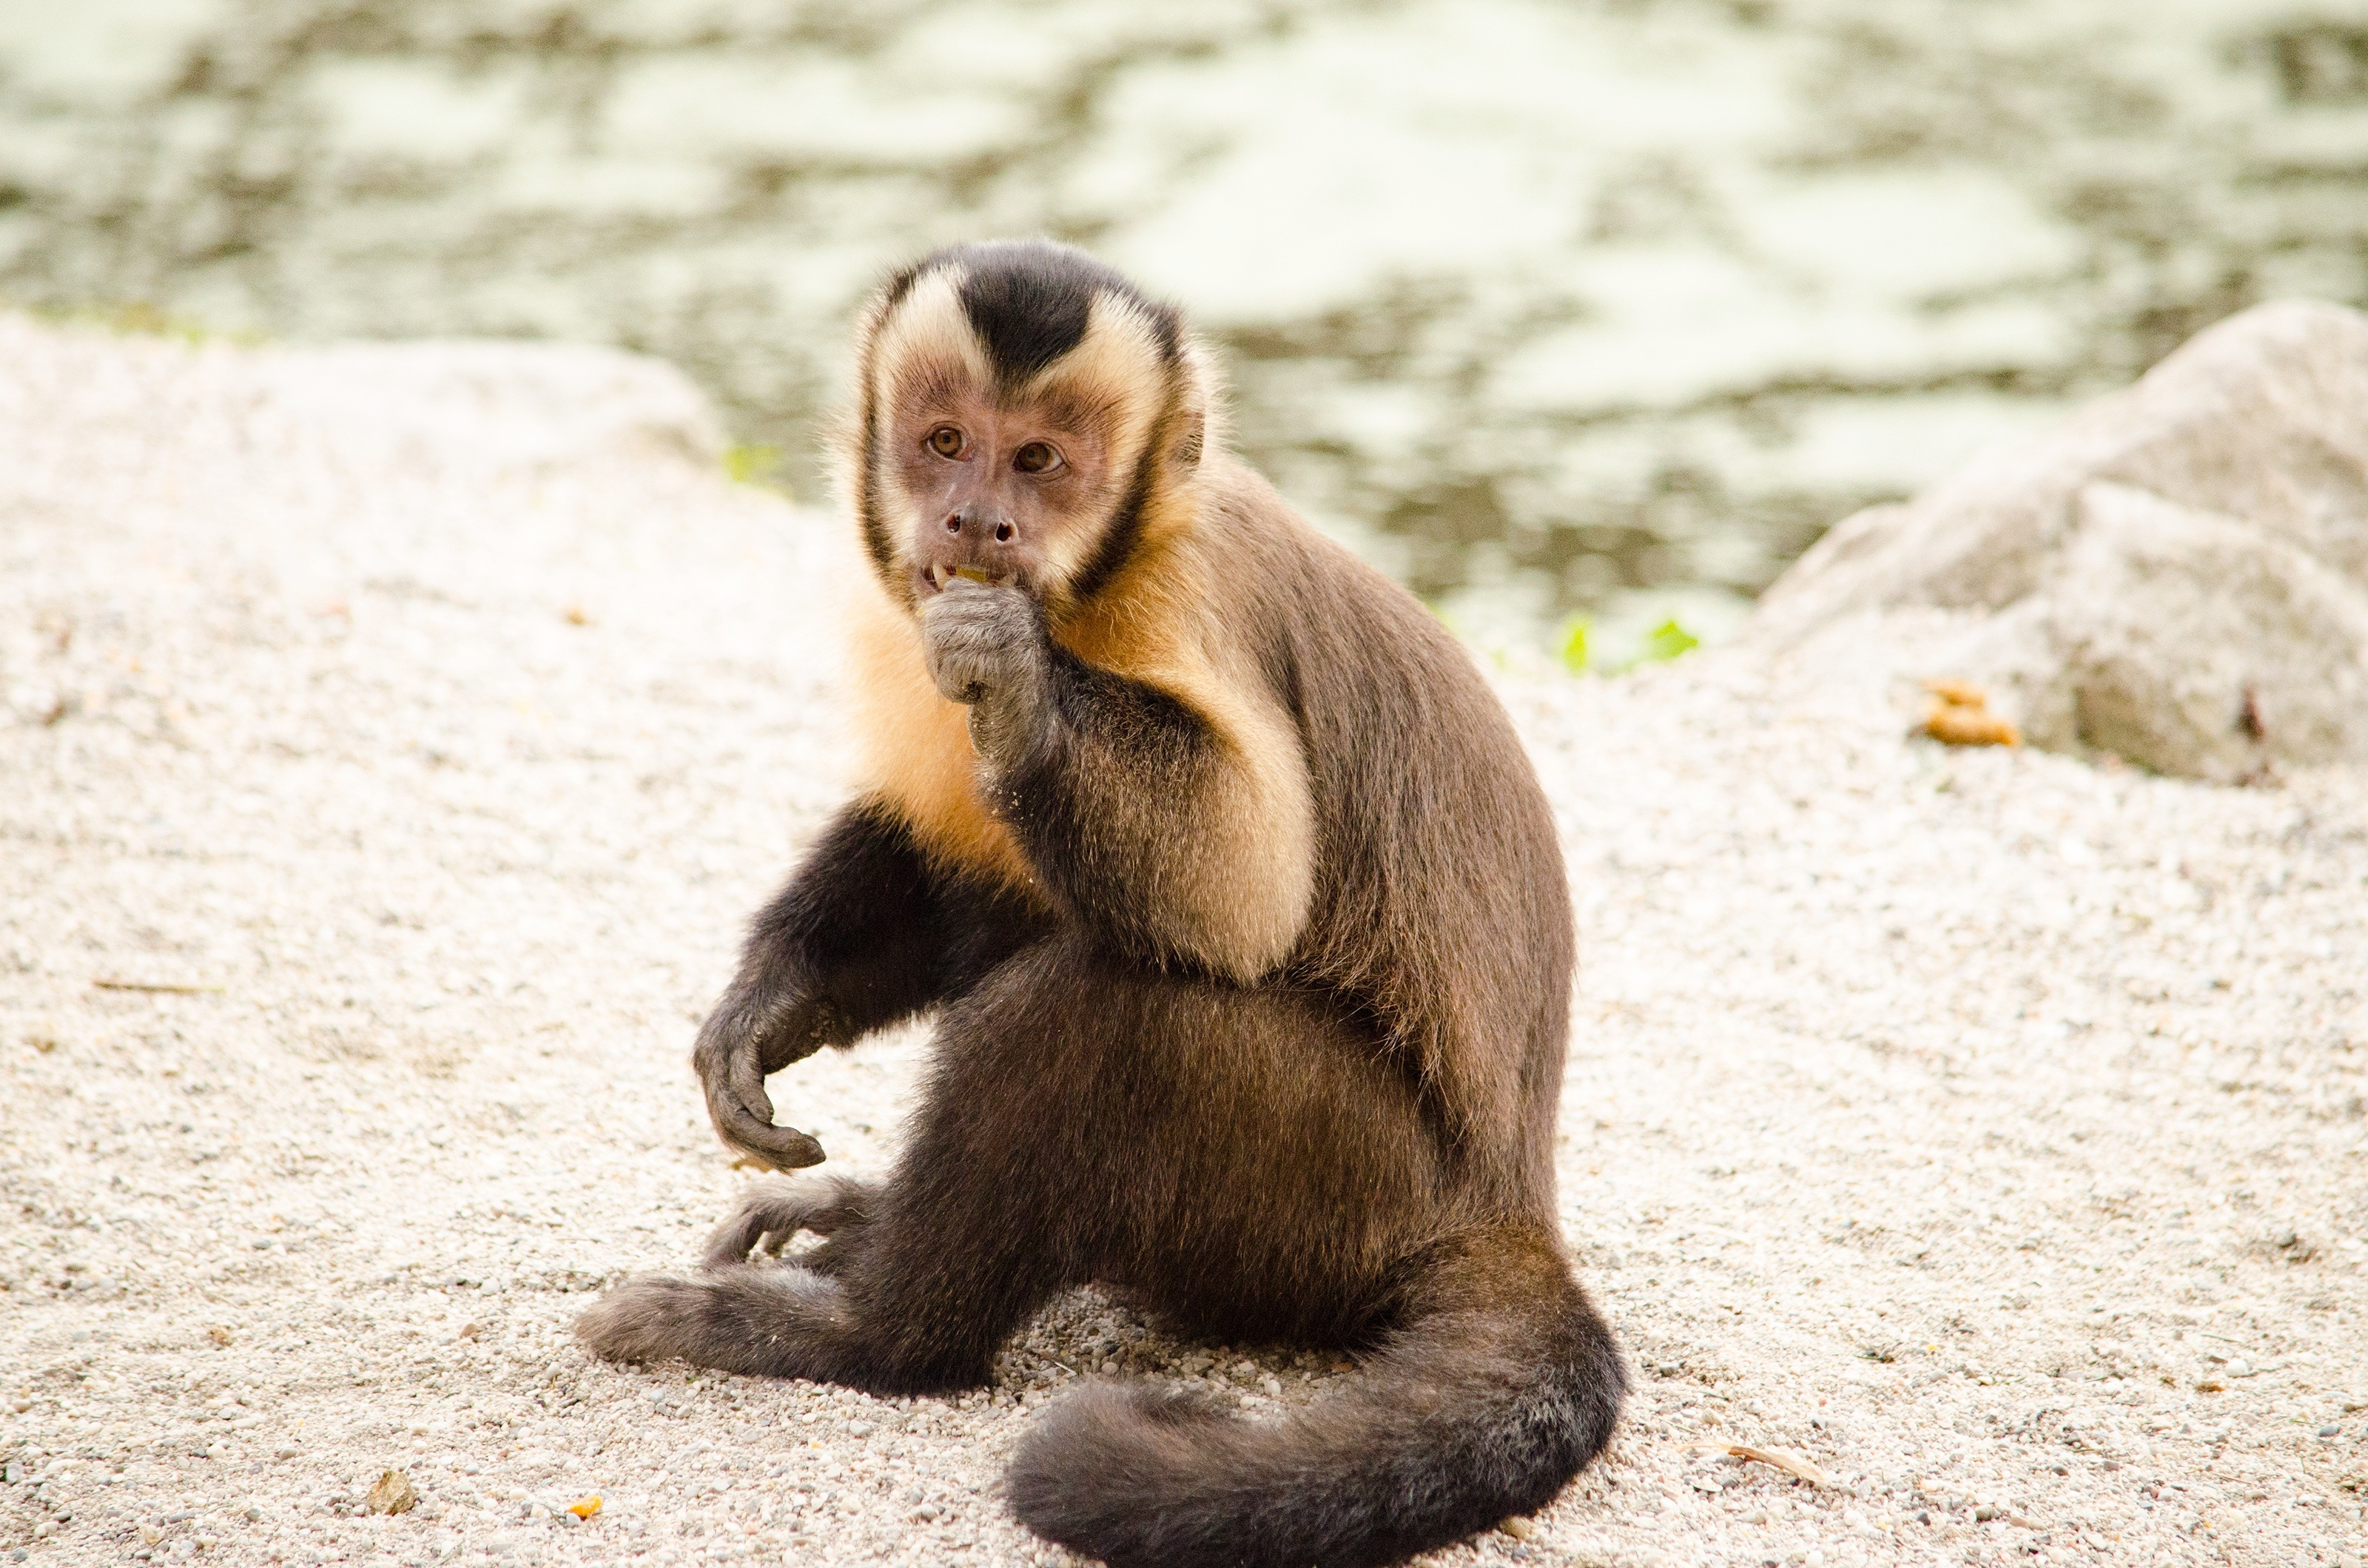 131240 download wallpaper Animals, Capuchin, Monkey, Small, Nice, Sweetheart screensavers and pictures for free